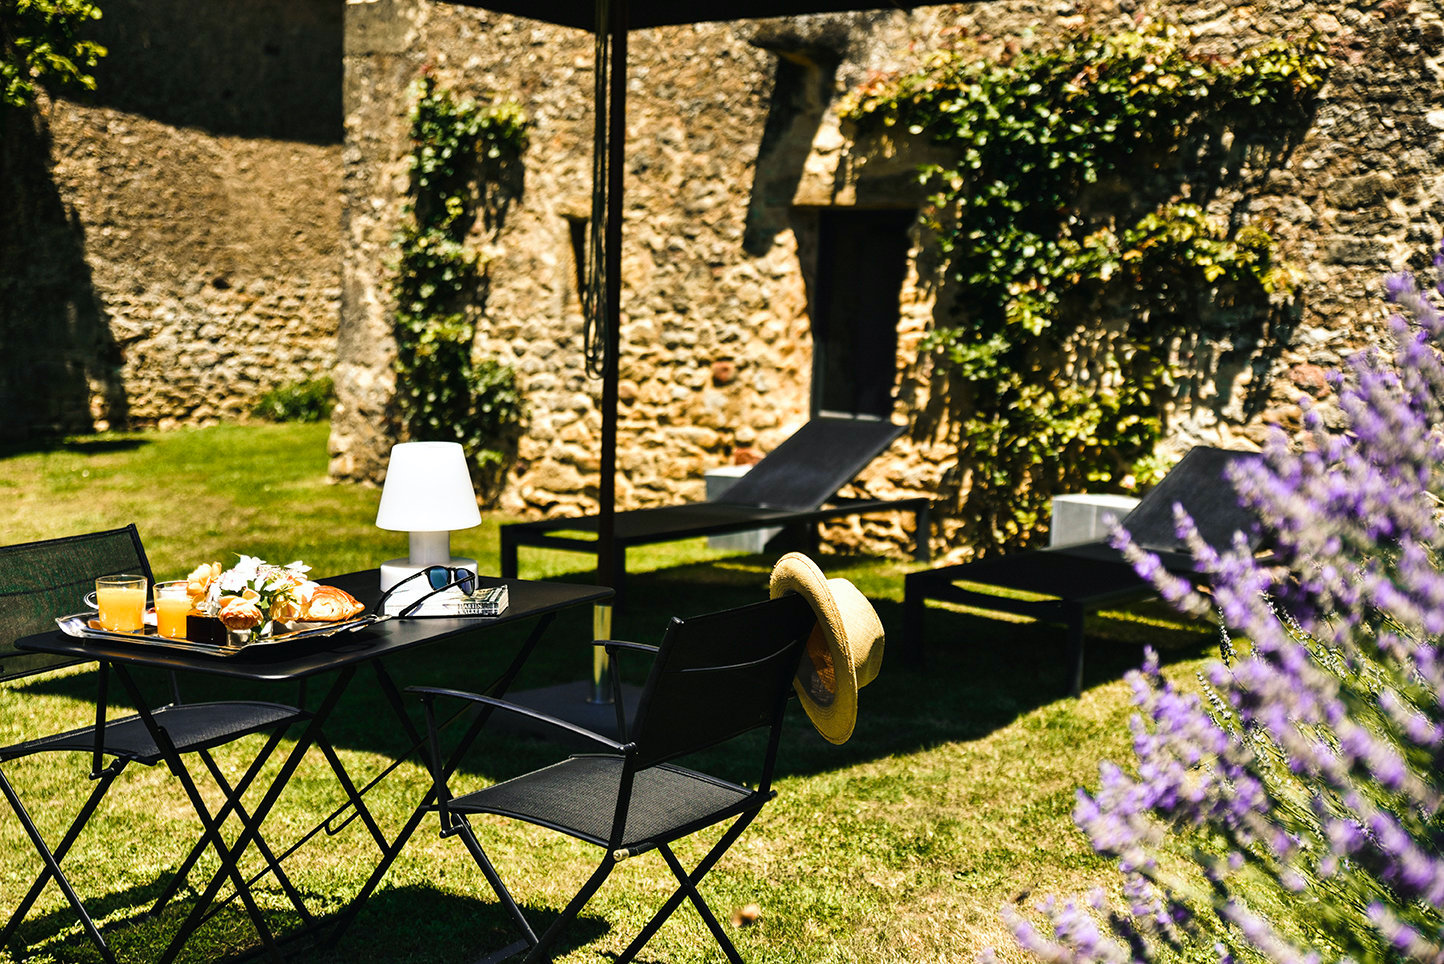 The private garden of a 1-bedroom holiday cottage in the Dordogne with garden furniture, lavender and roses climbing the stone walls